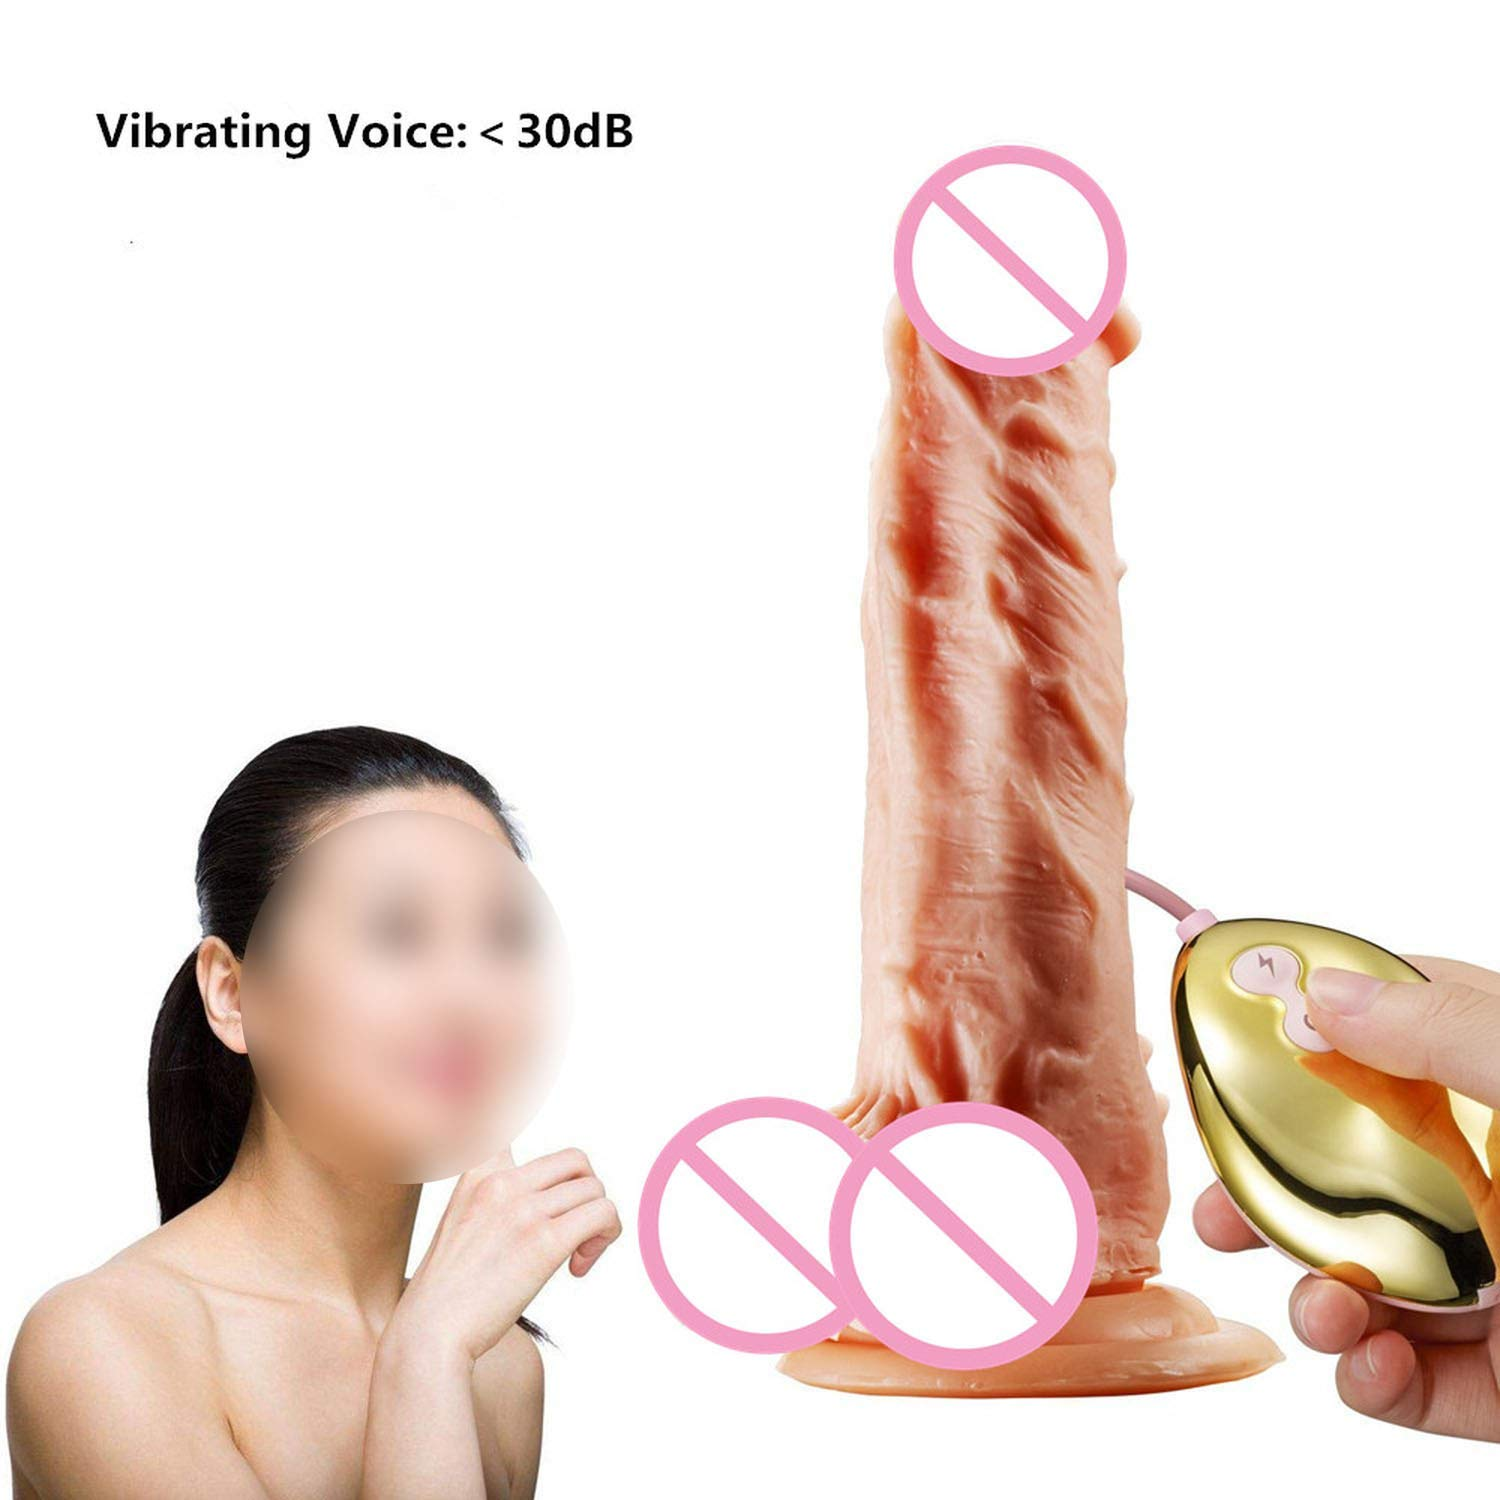 SA Tshirt Heating Vibrator Big P-Enis Rotating Anal R-ealistic Suction Cup for Women,Heating,185mmx38mm TDT by Splendid Artists (Image #5)